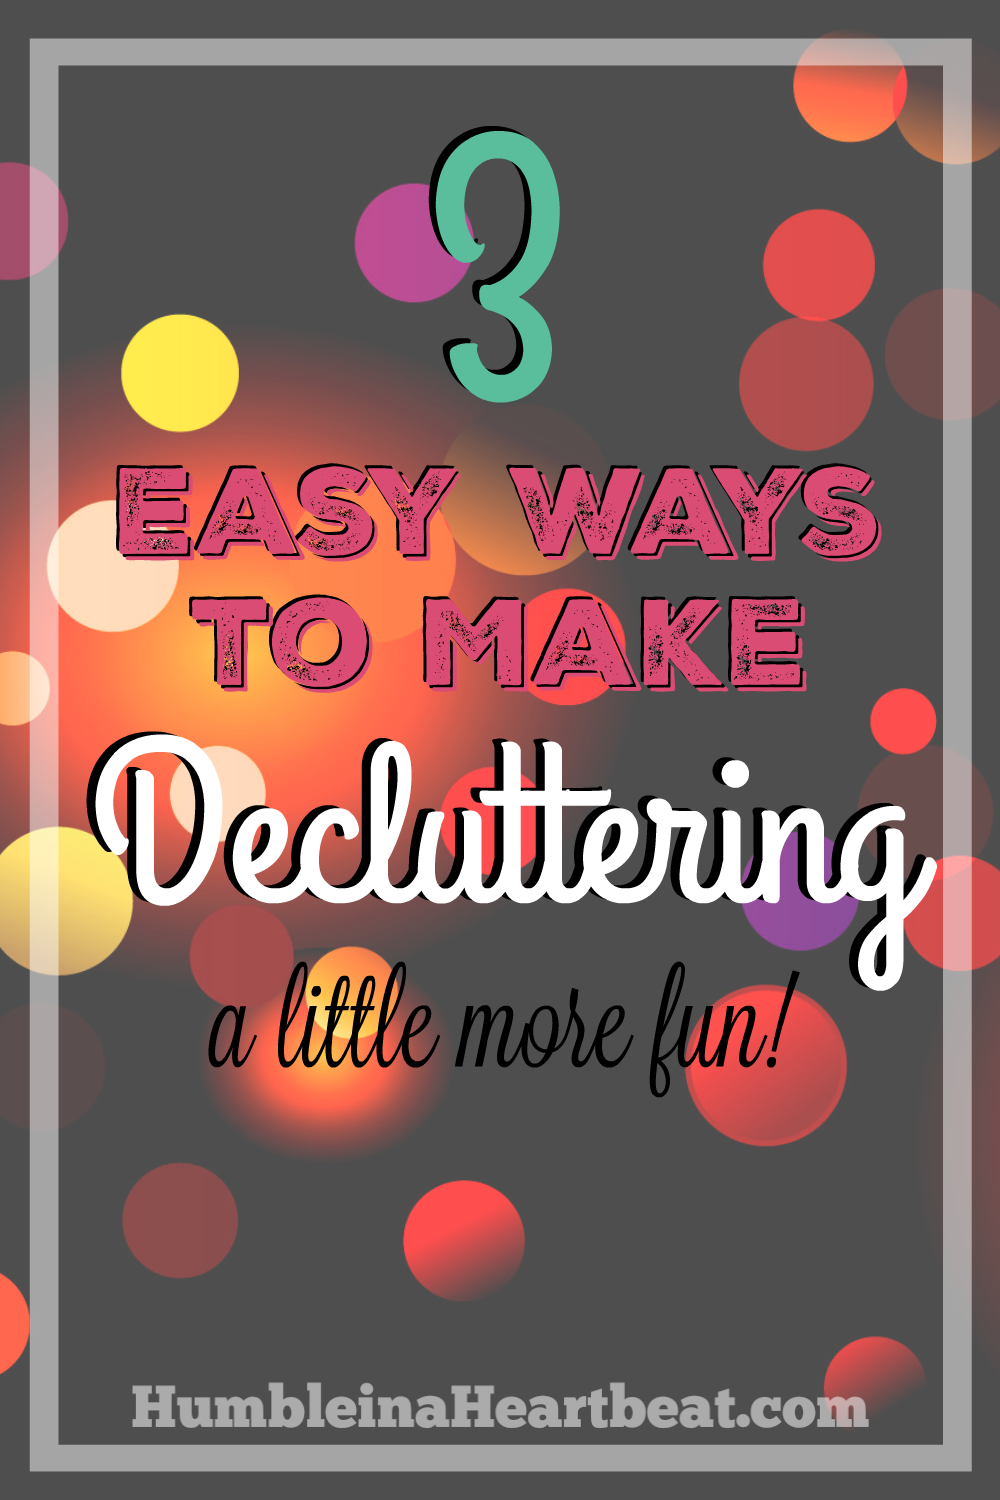 Decluttering your home is a key step to stop spending so much money. But if you're like me, decluttering is not your favorite activity, so you need to do it the fun way. Here are 3 truly easy ways to have more fun decluttering!